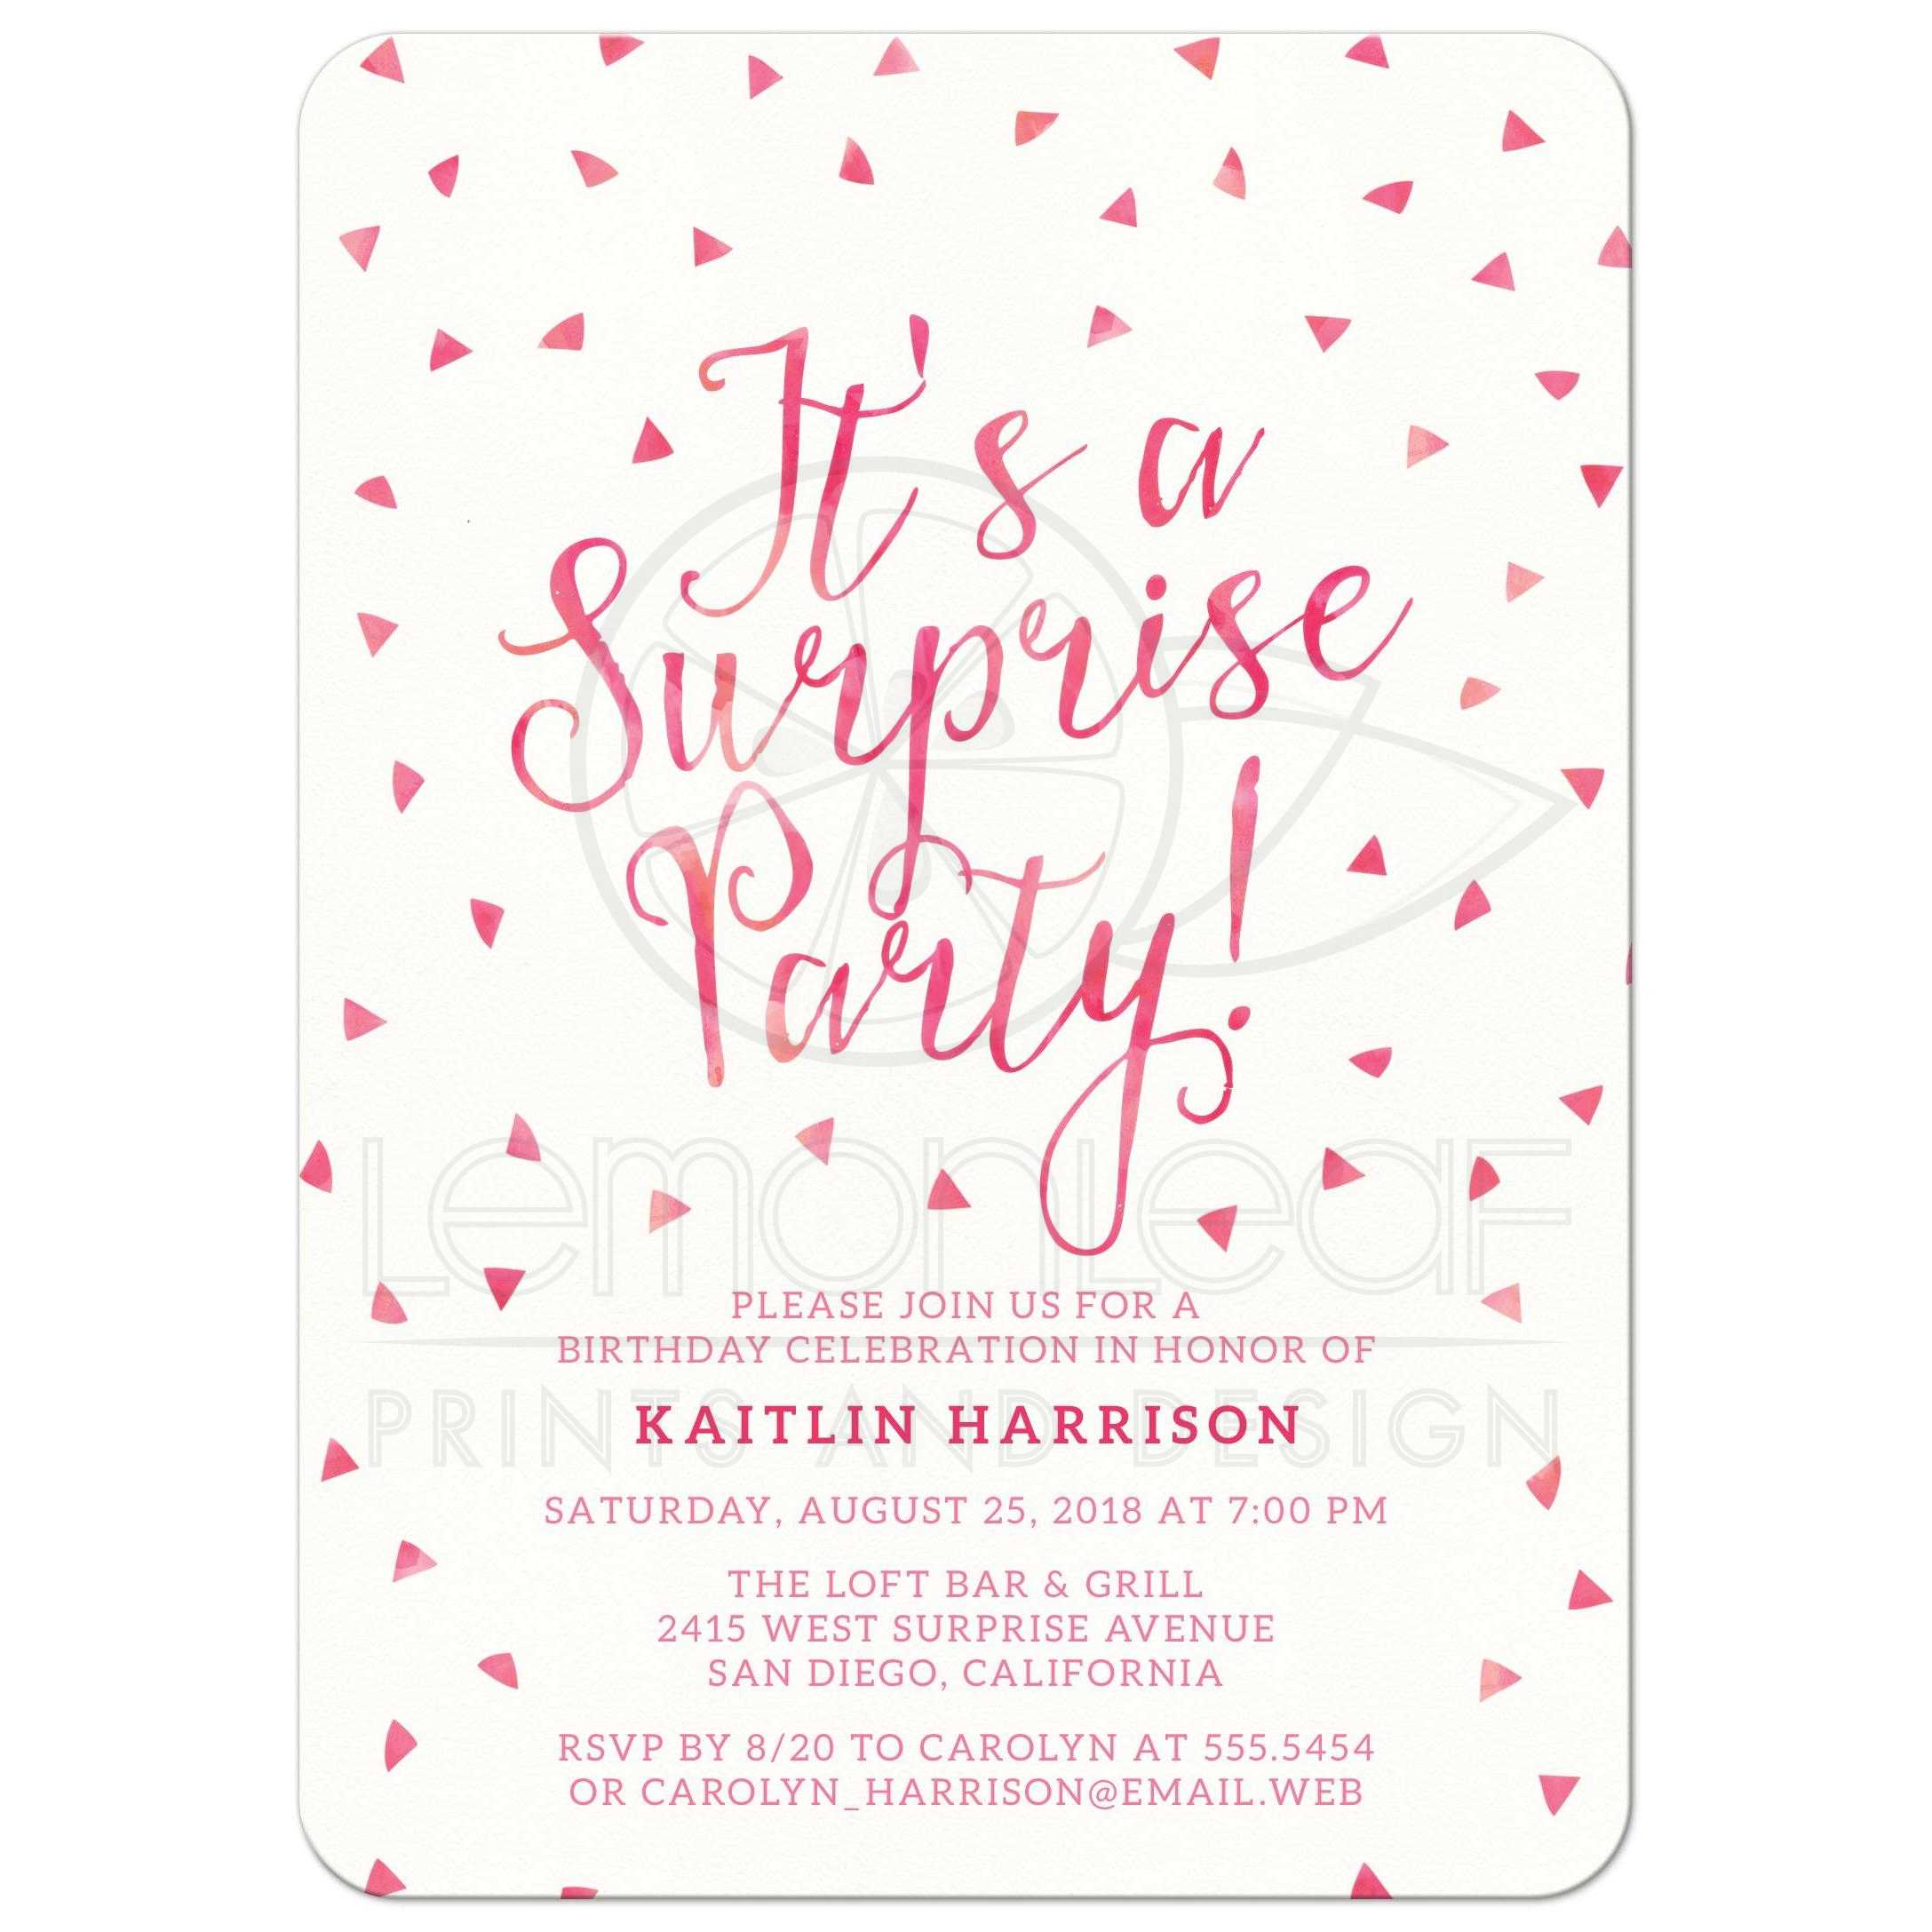 Surprise Birthday Party Invitations Pink Watercolor Triangle Confetti